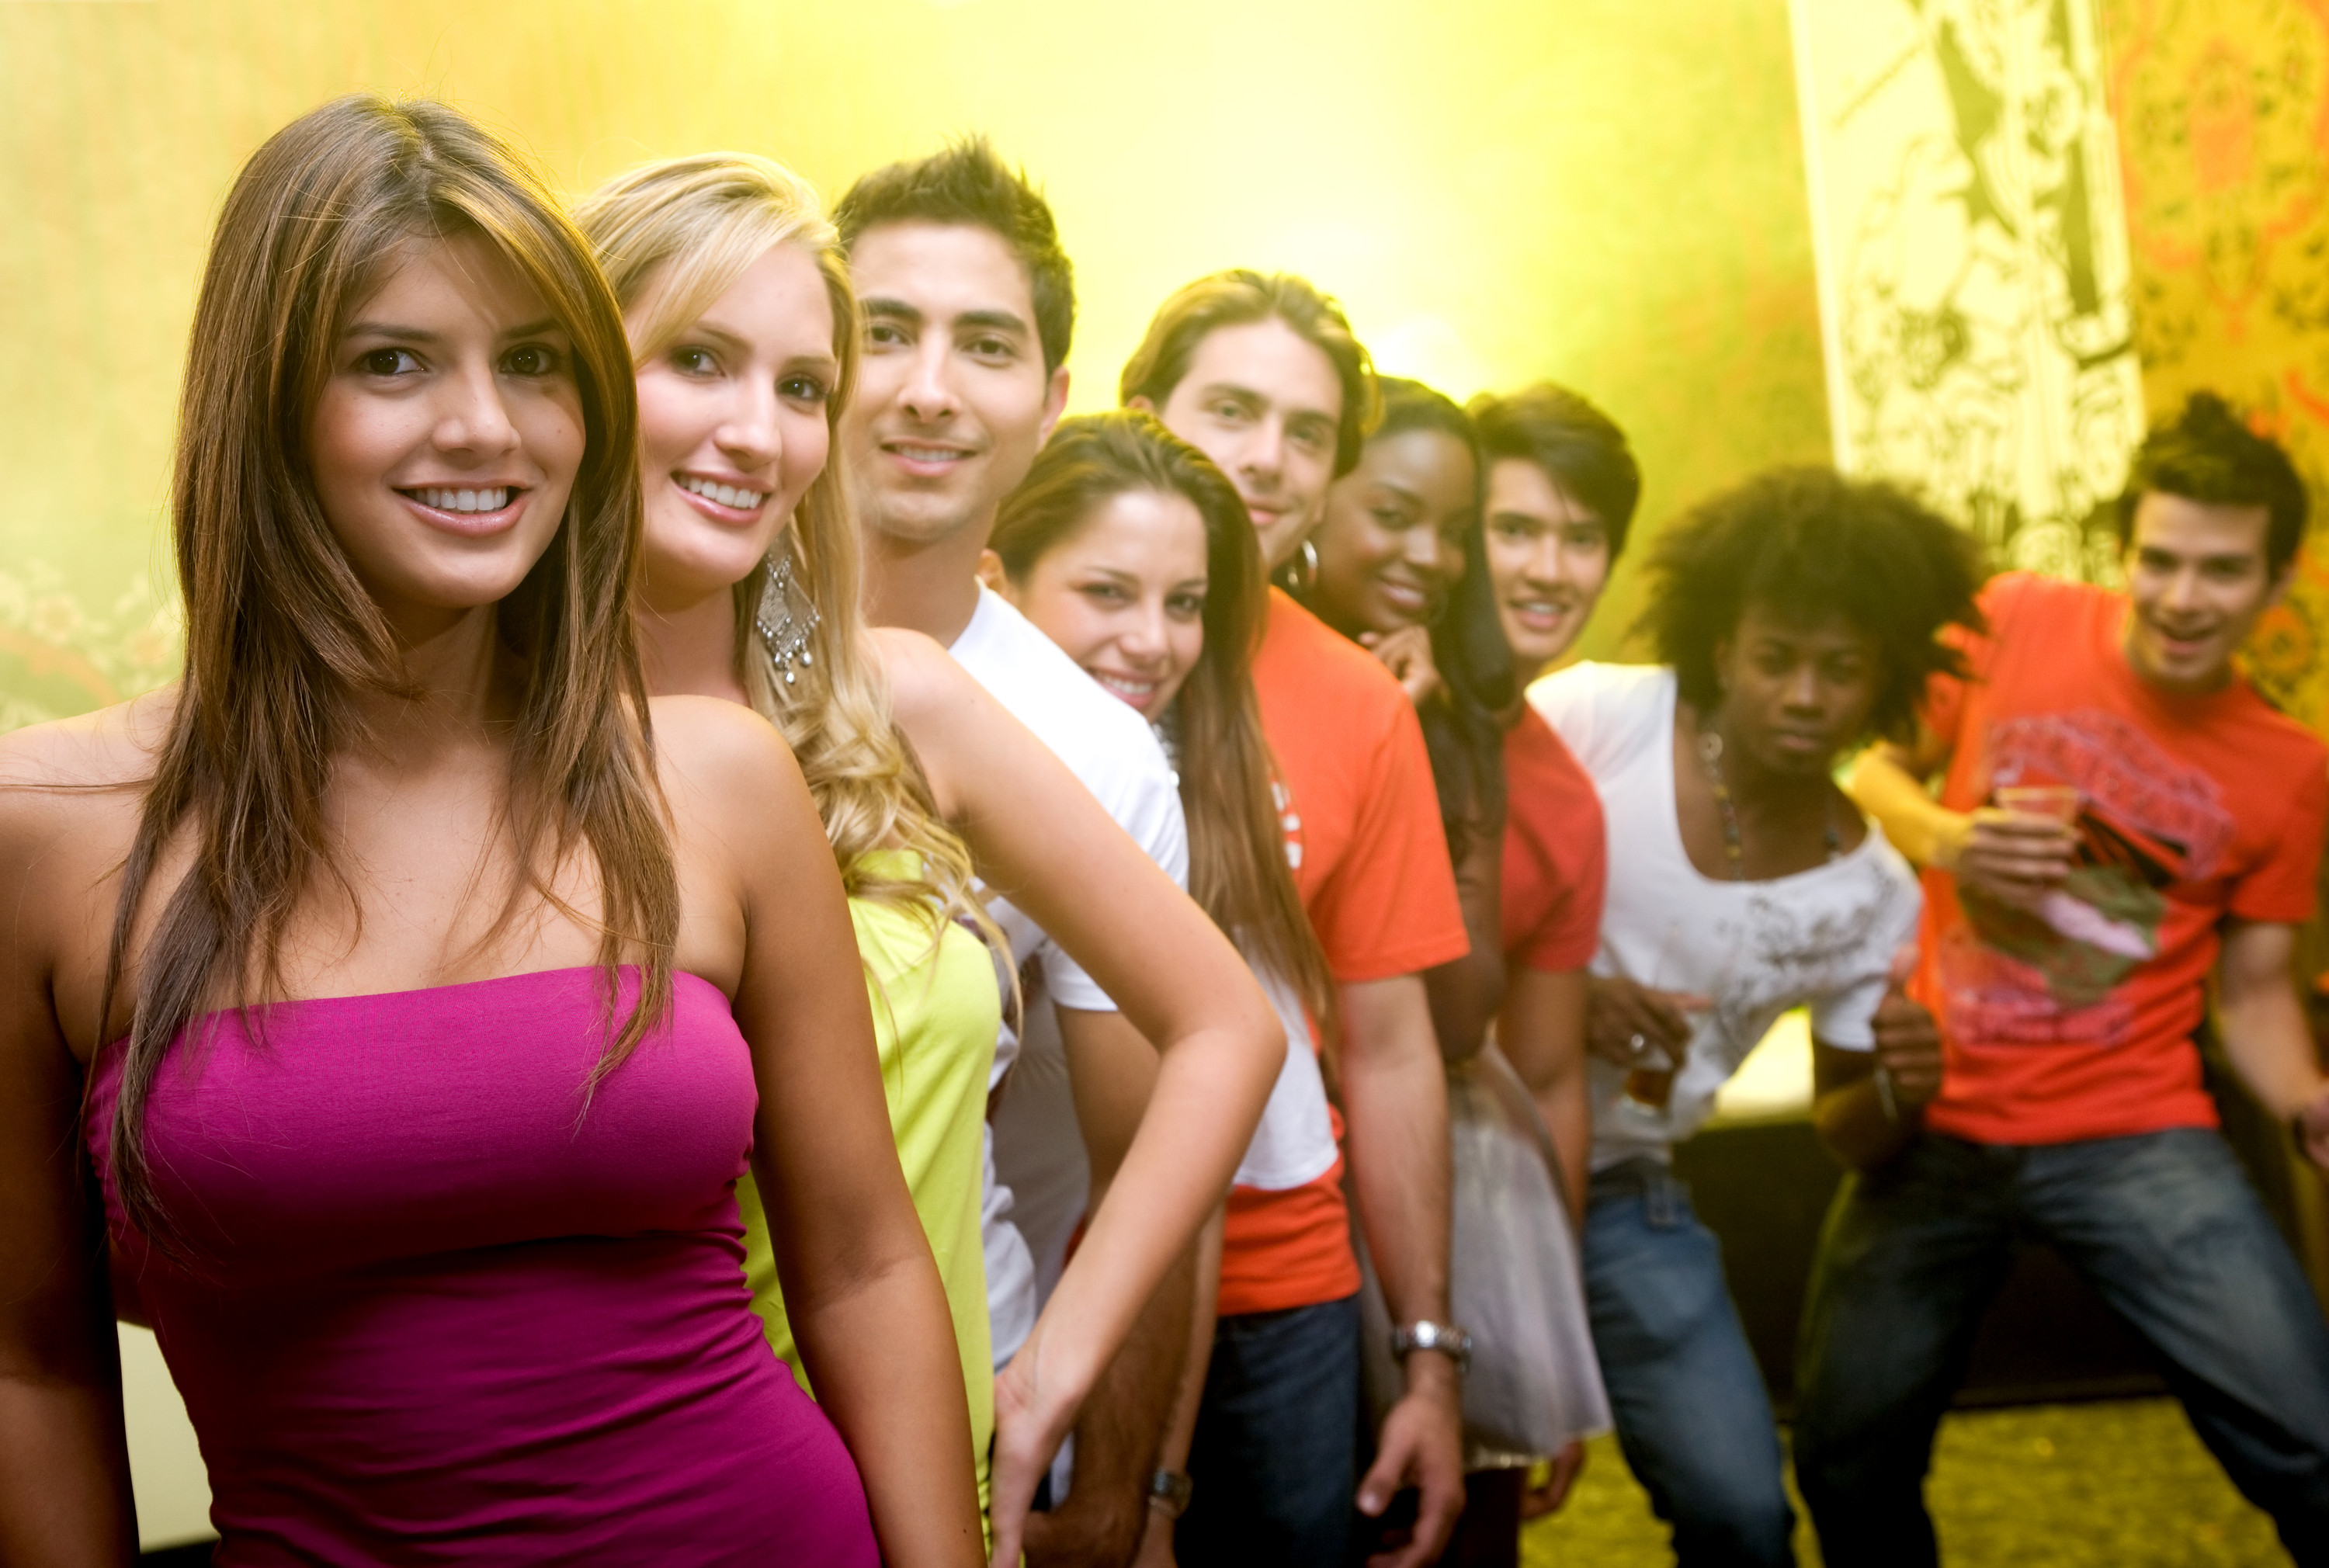 best dating site for 420 Online dating site targets pot users who want someone to  pot smokers dating website matches couples based on 'cannabis  marijuana often falls into that.